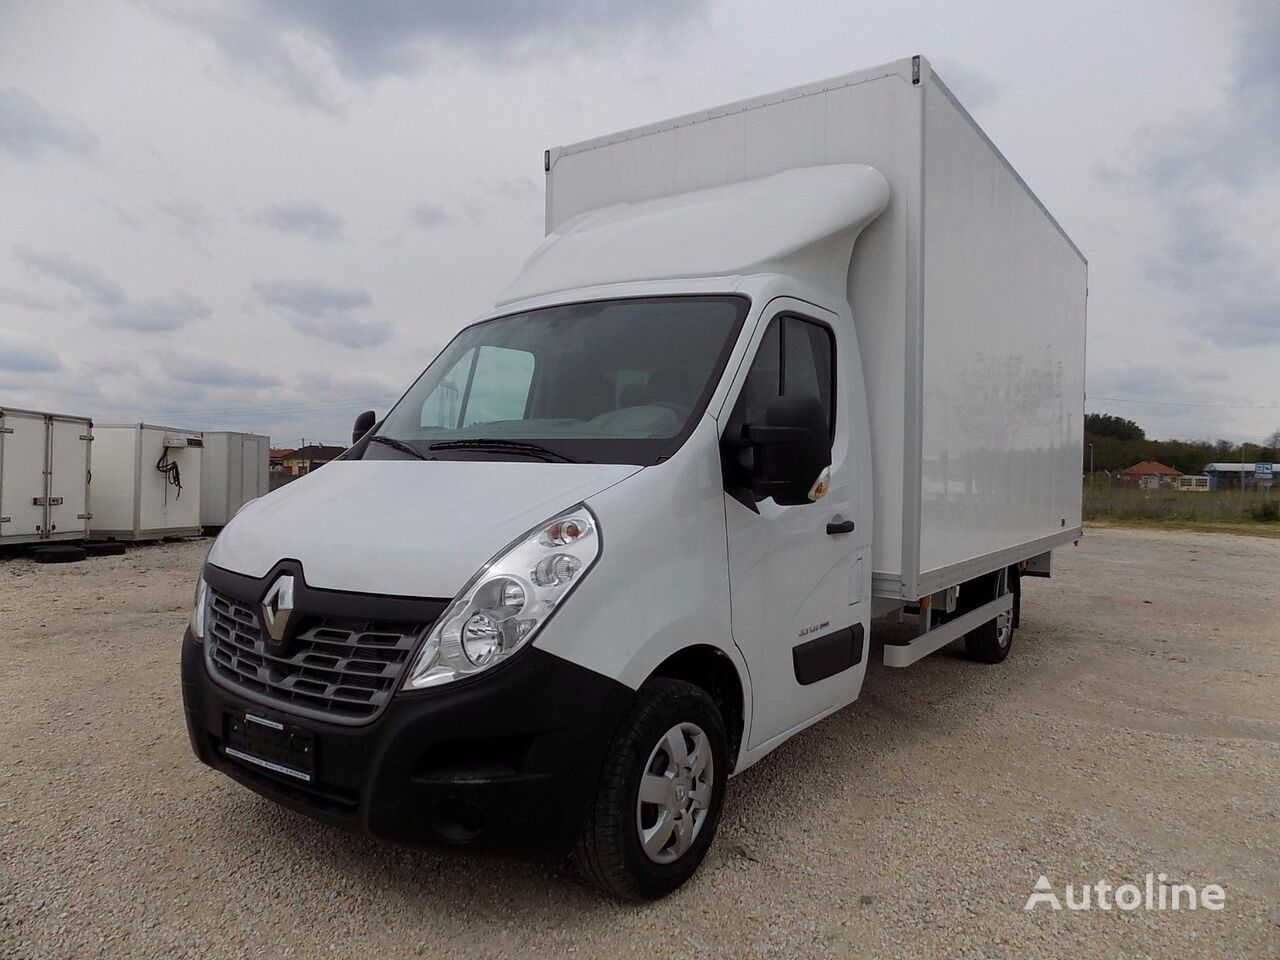 furgone autocarro VOLKSWAGEN Crafter XLH2, 15,6m3, 136Ps nuovo